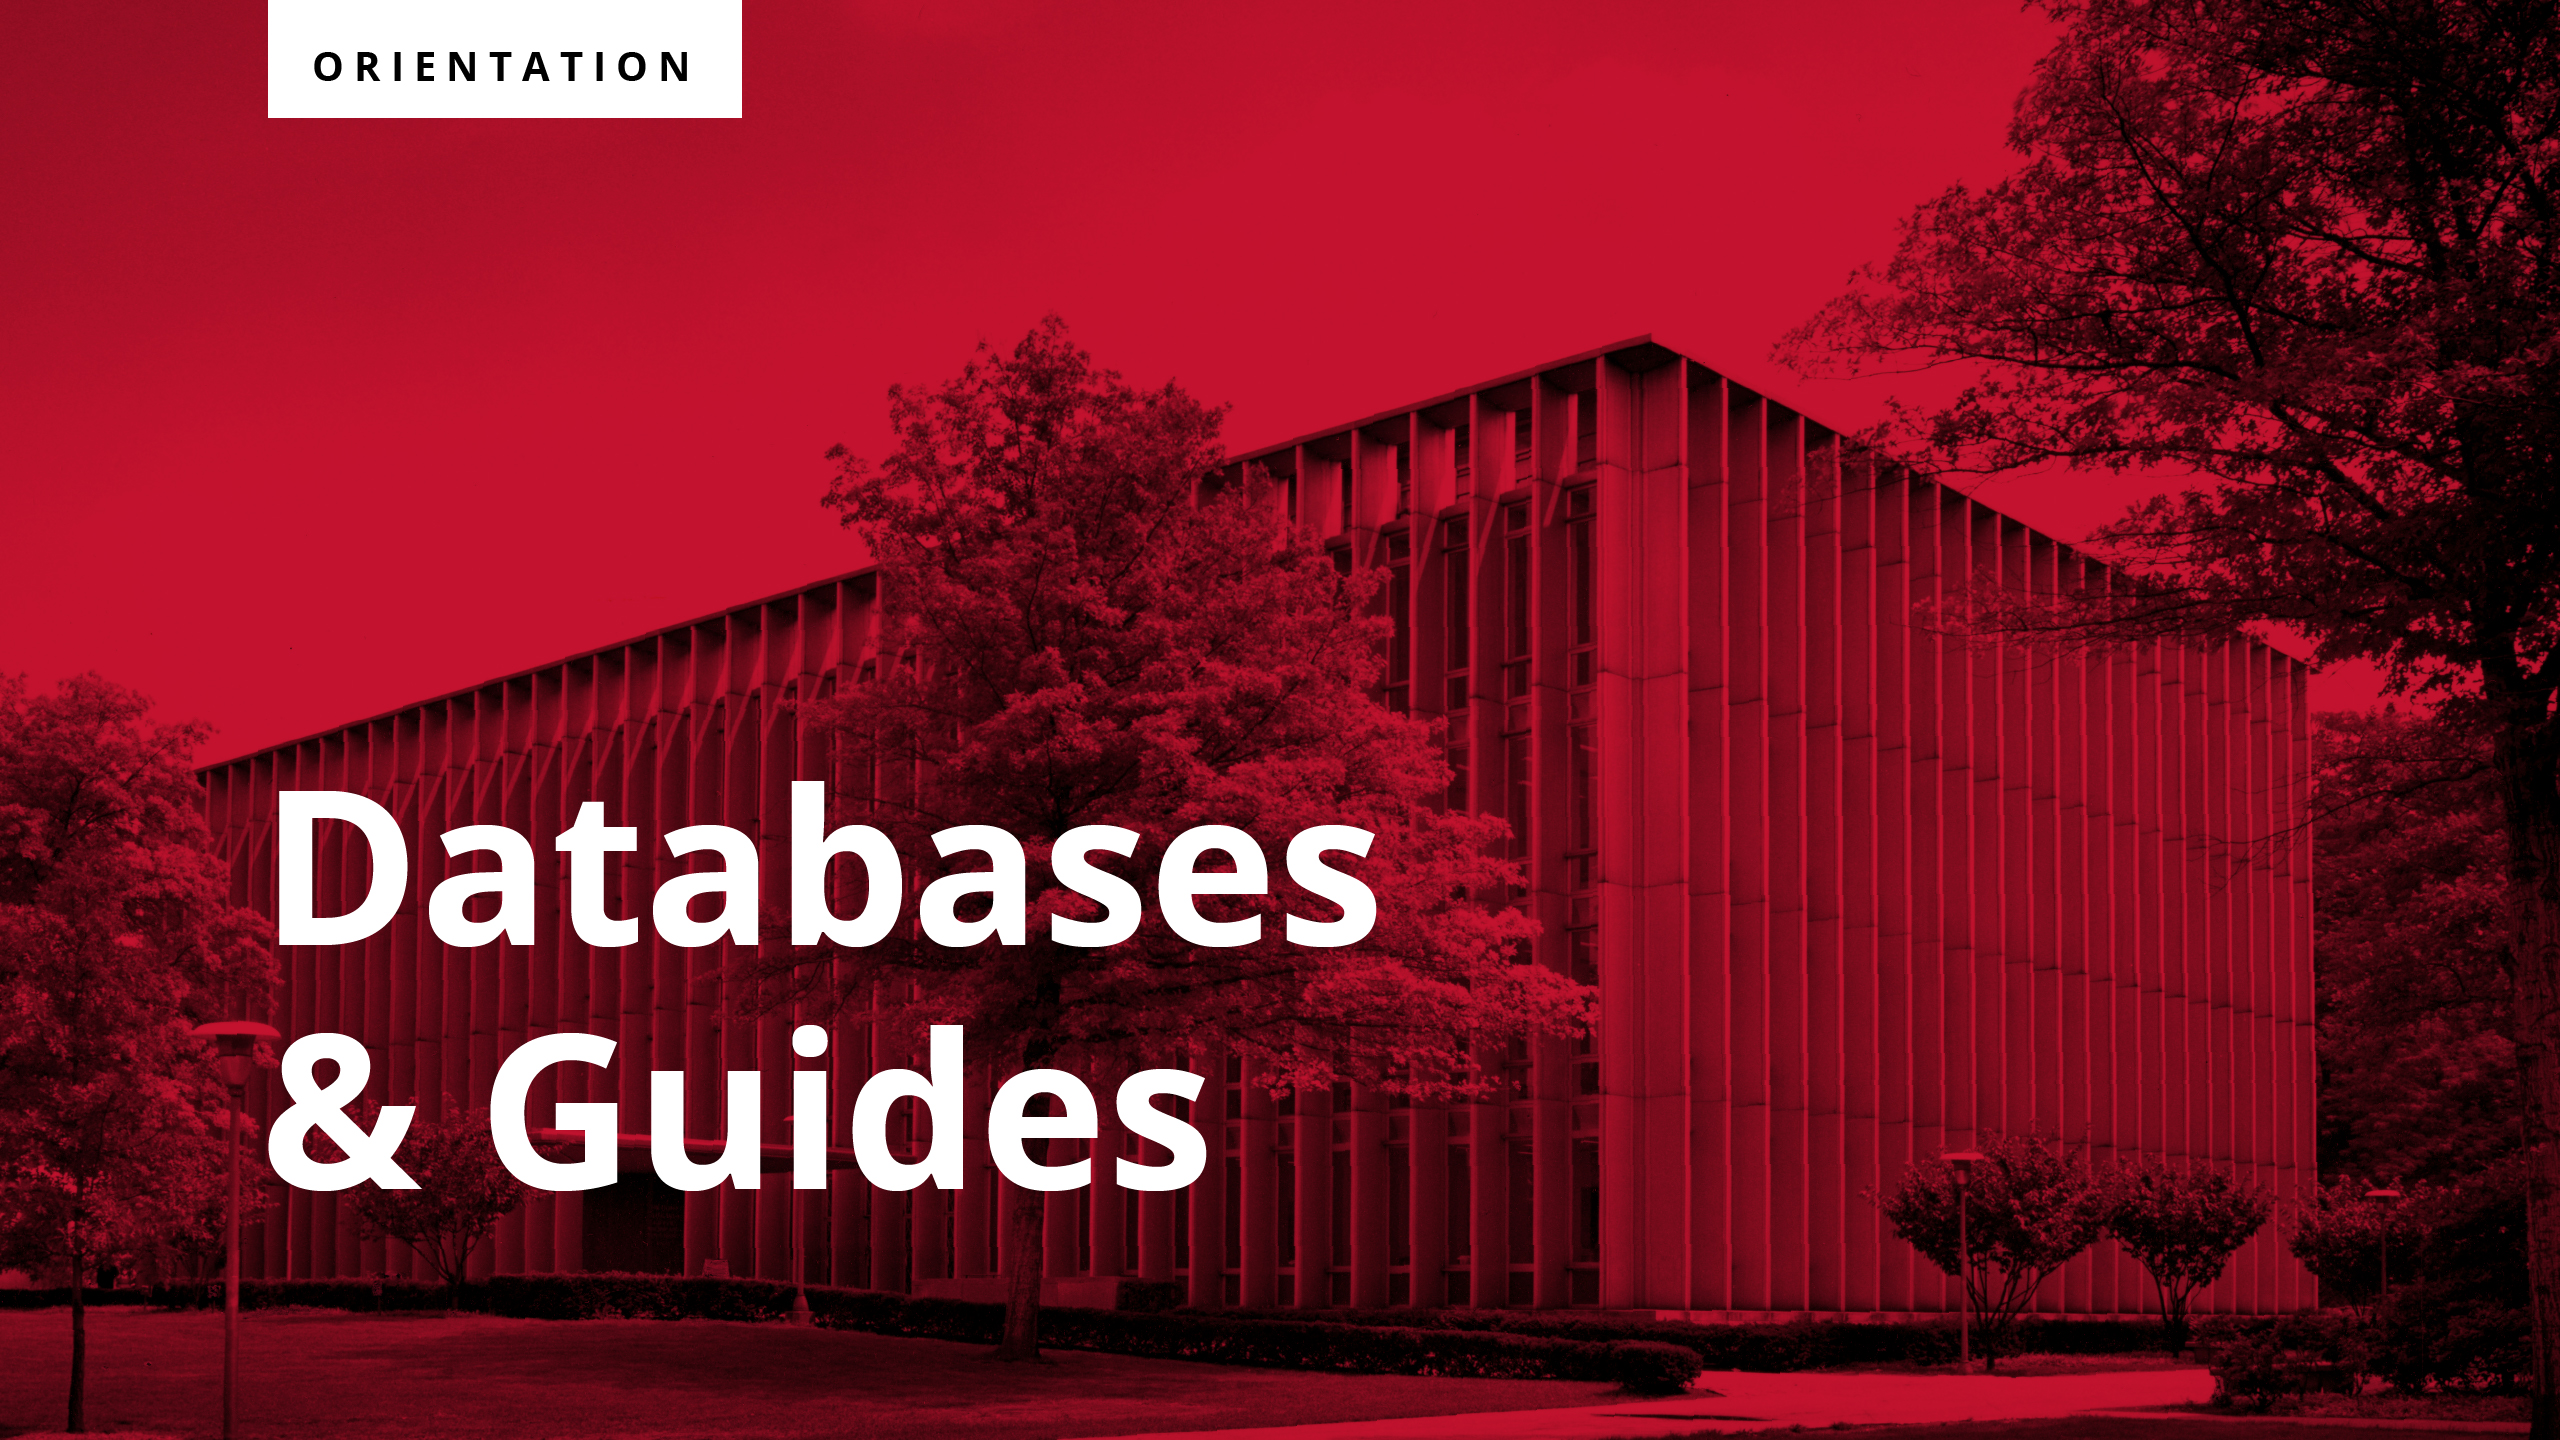 Click on this tutorial slide to view a video on how to search Databases and Guides